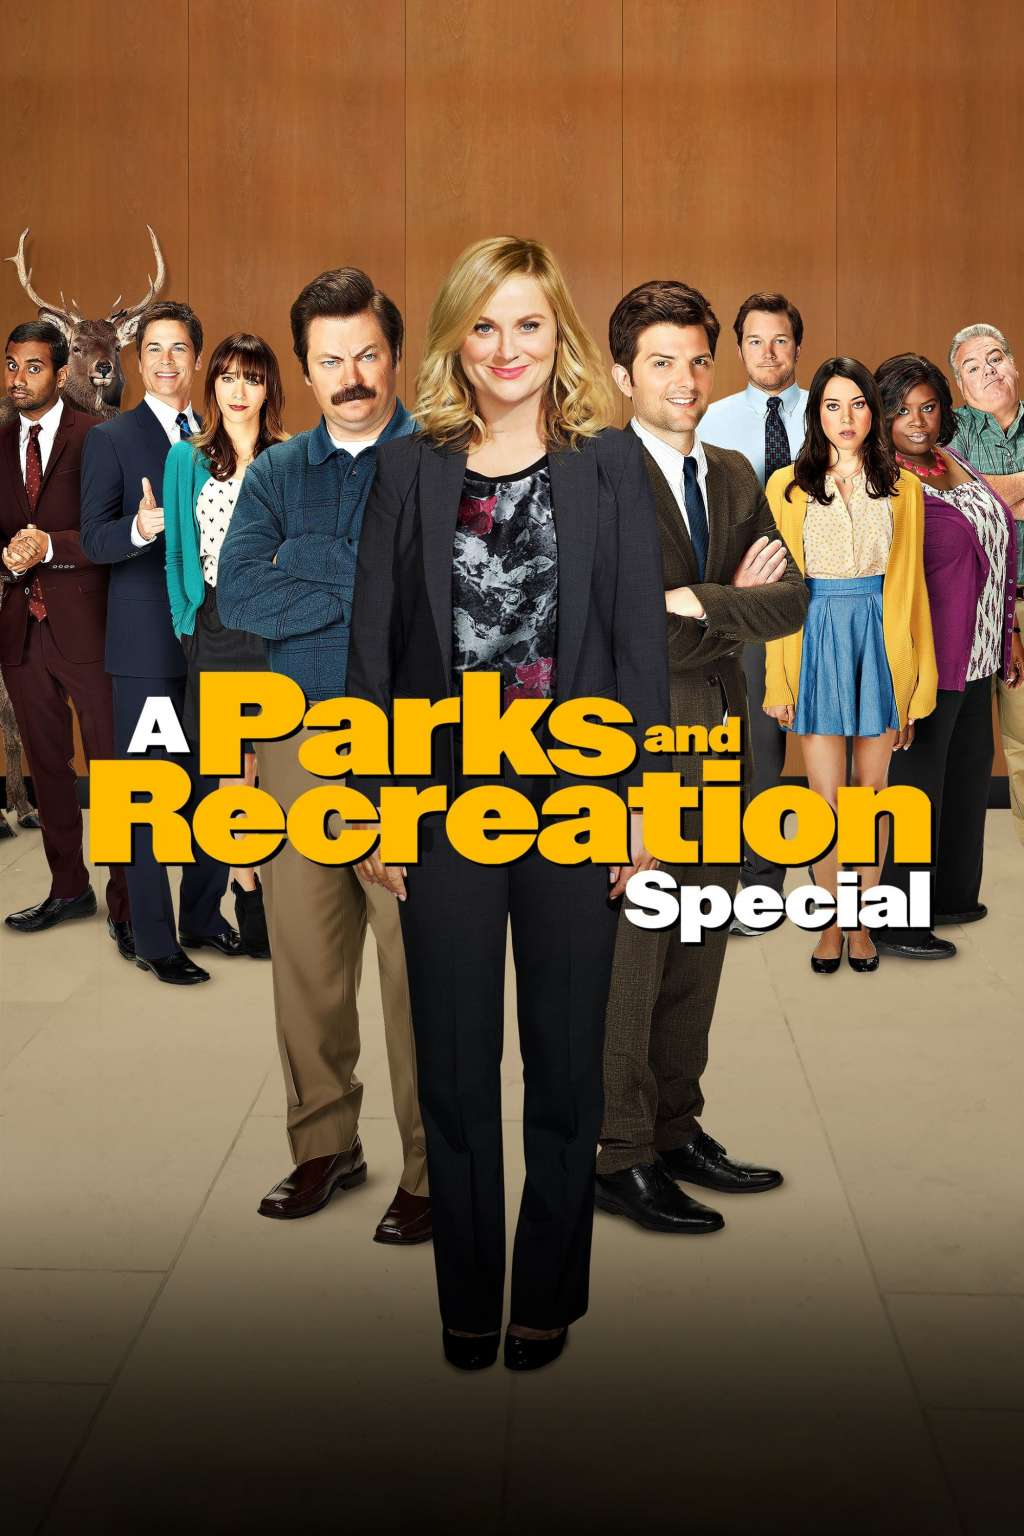 A Parks and Recreation Special kapak